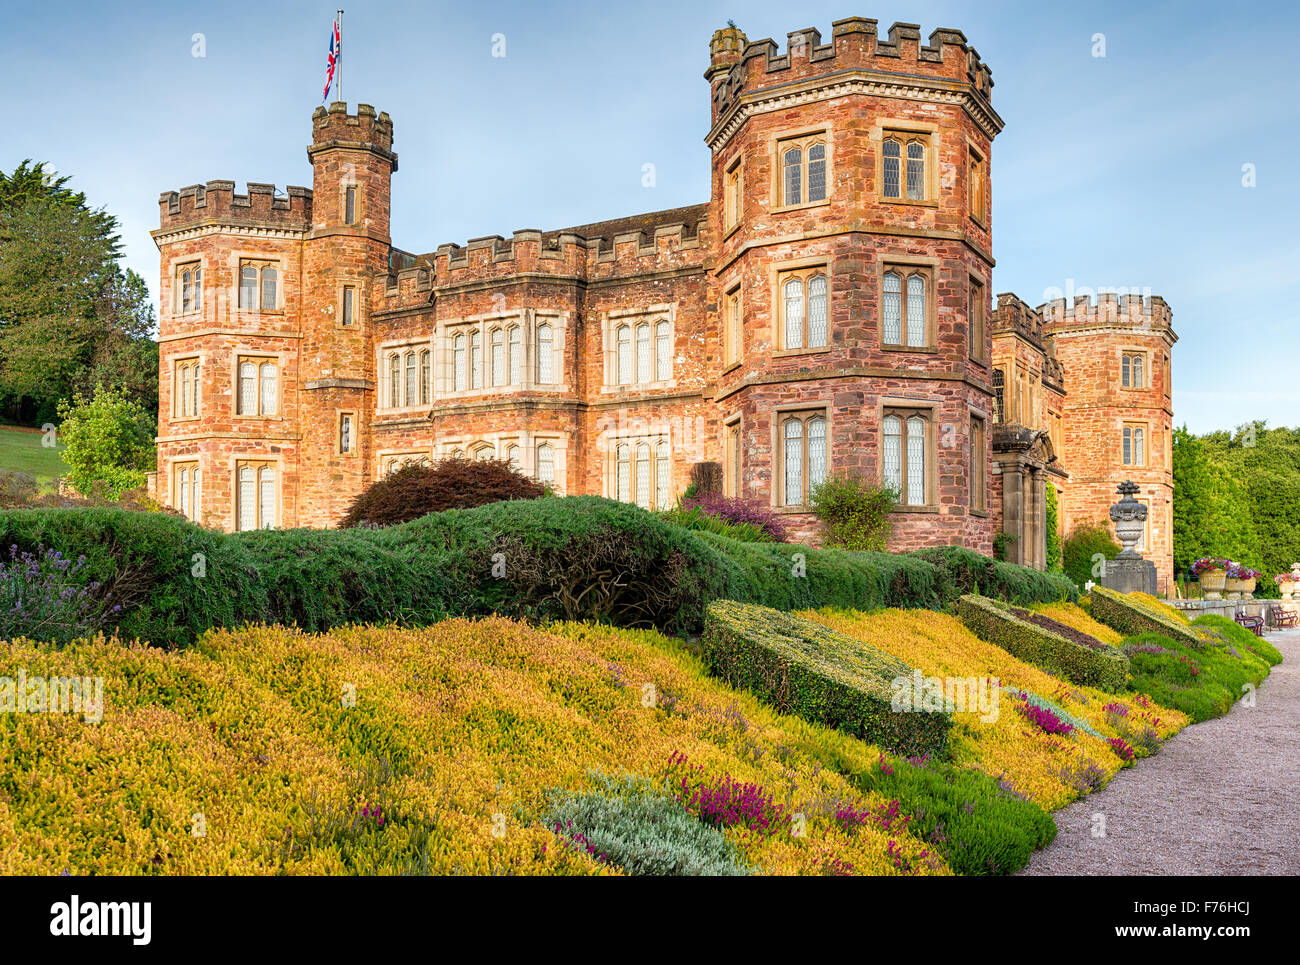 An English stately home in the style of a castle at Mount Edgcumbe in Cornwall - Stock Image